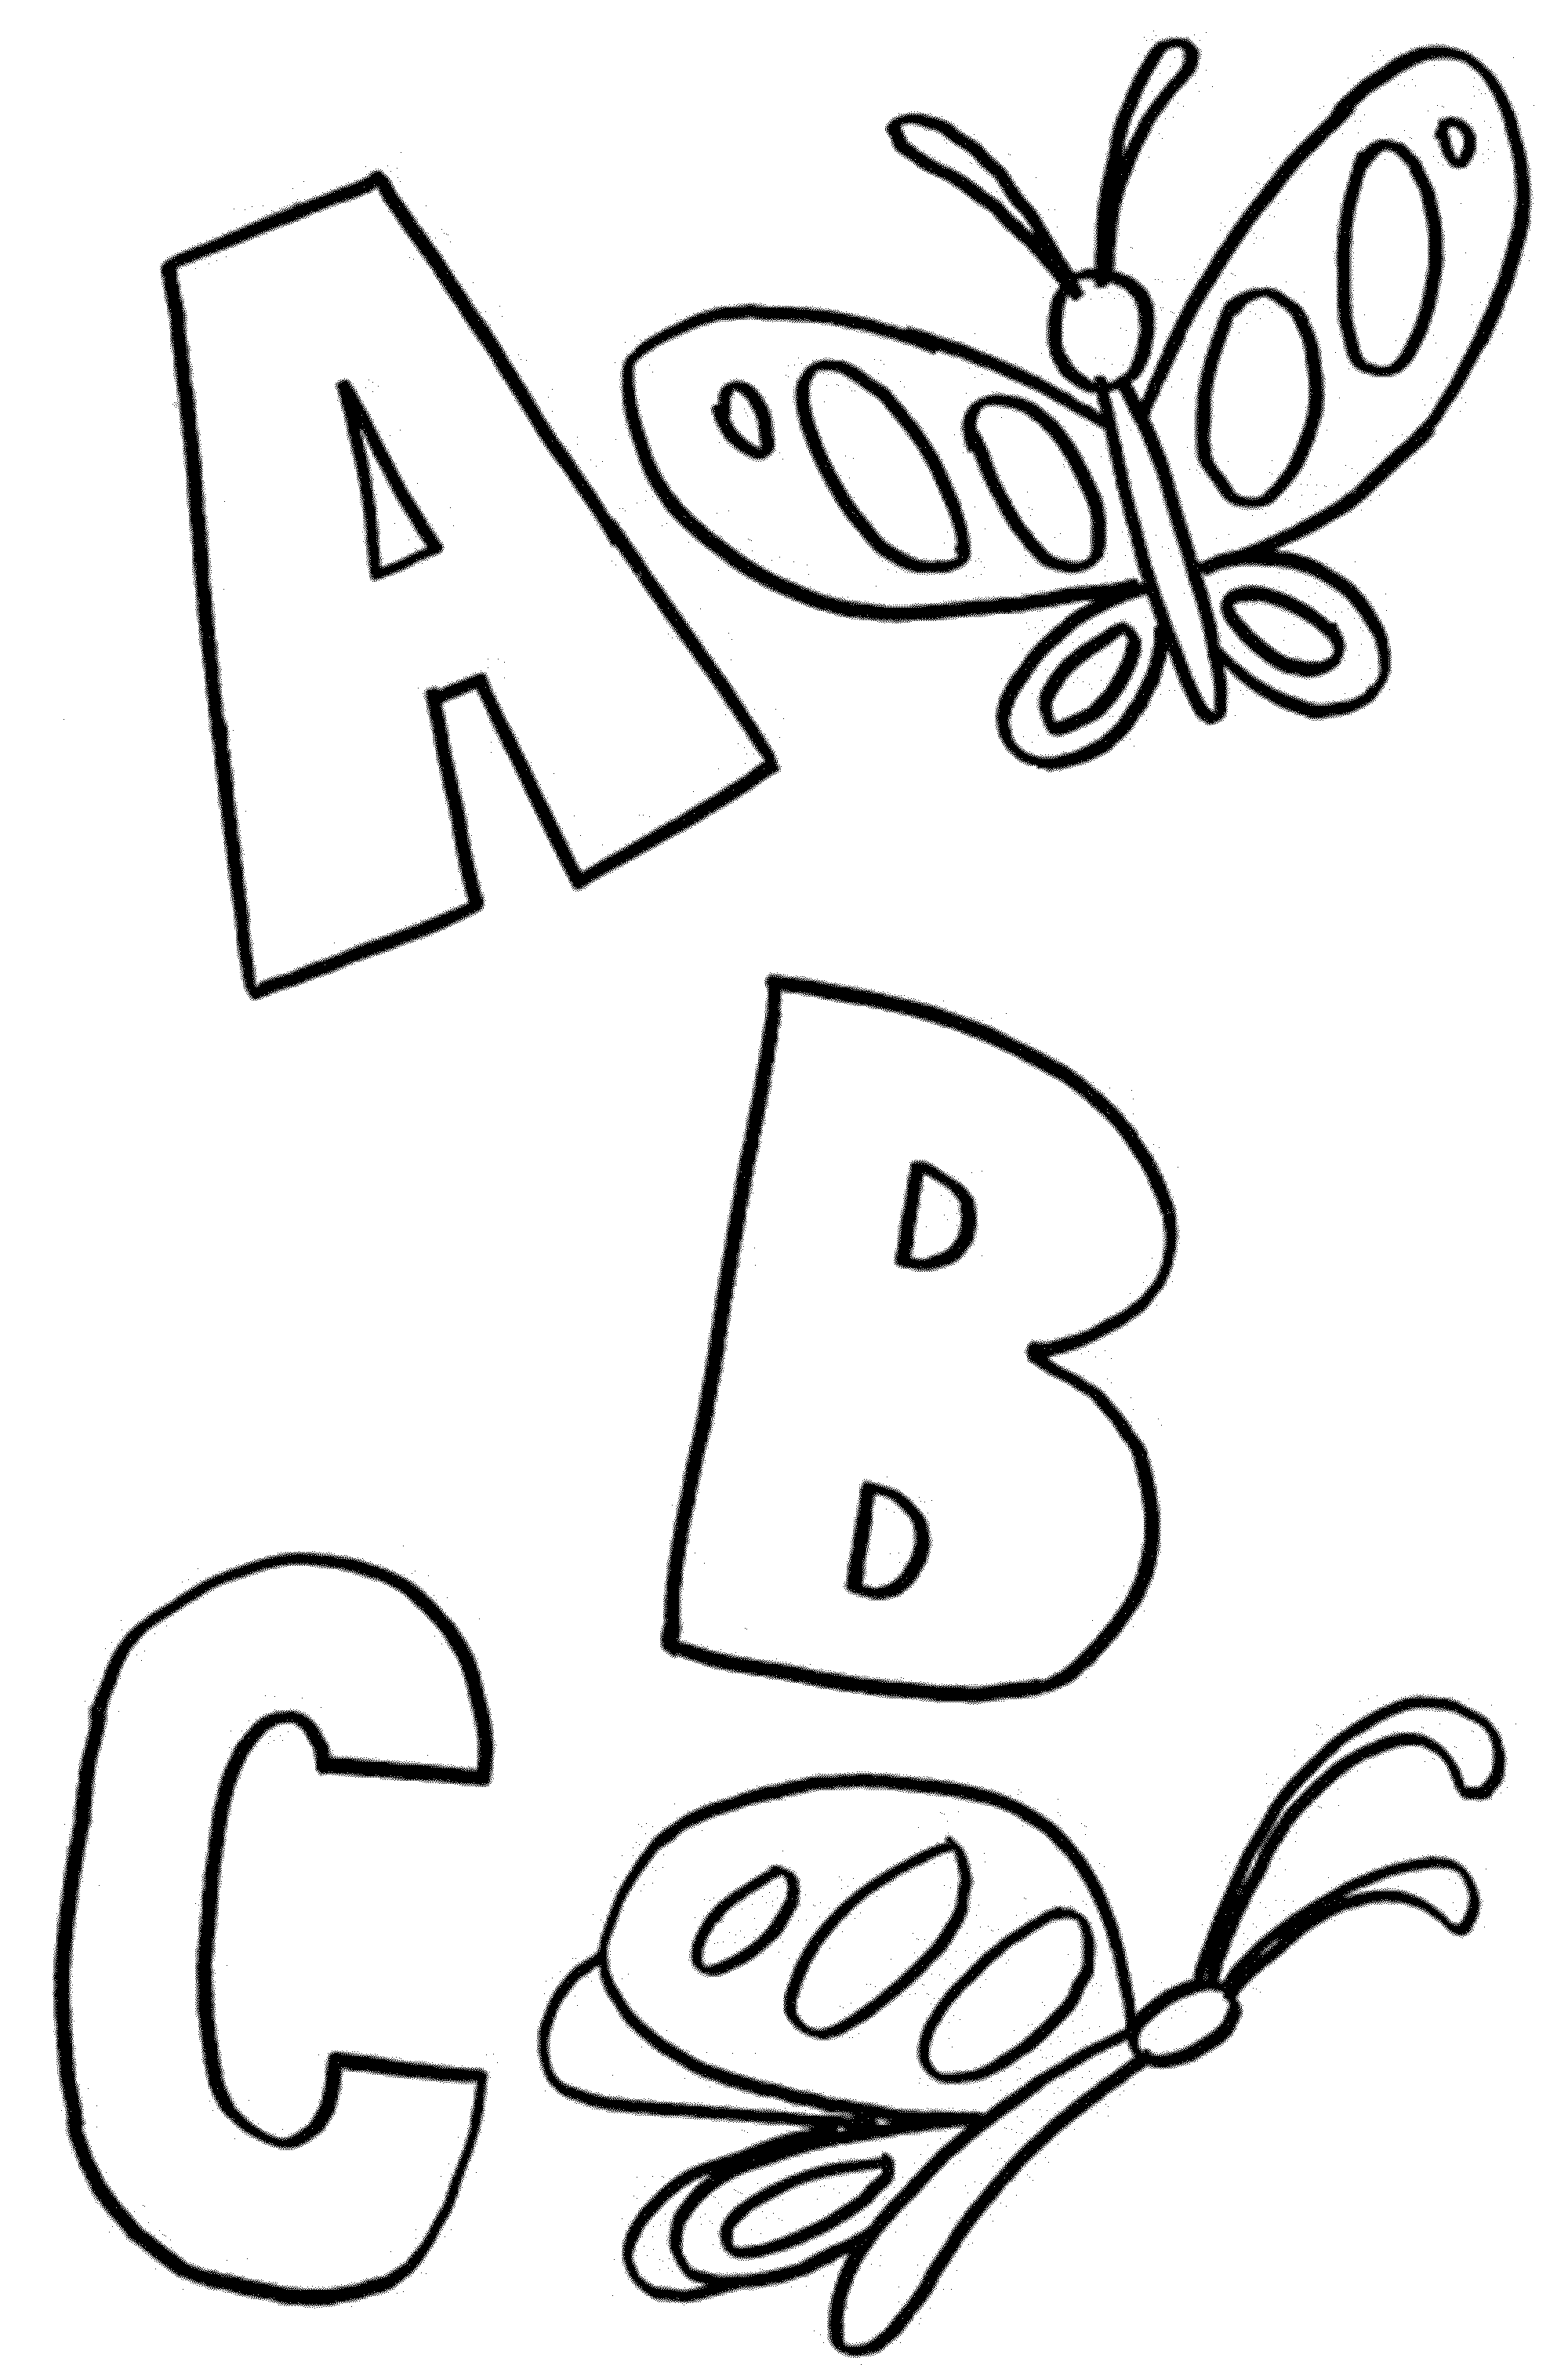 ABC Animals Coloring Pages Kindergarten